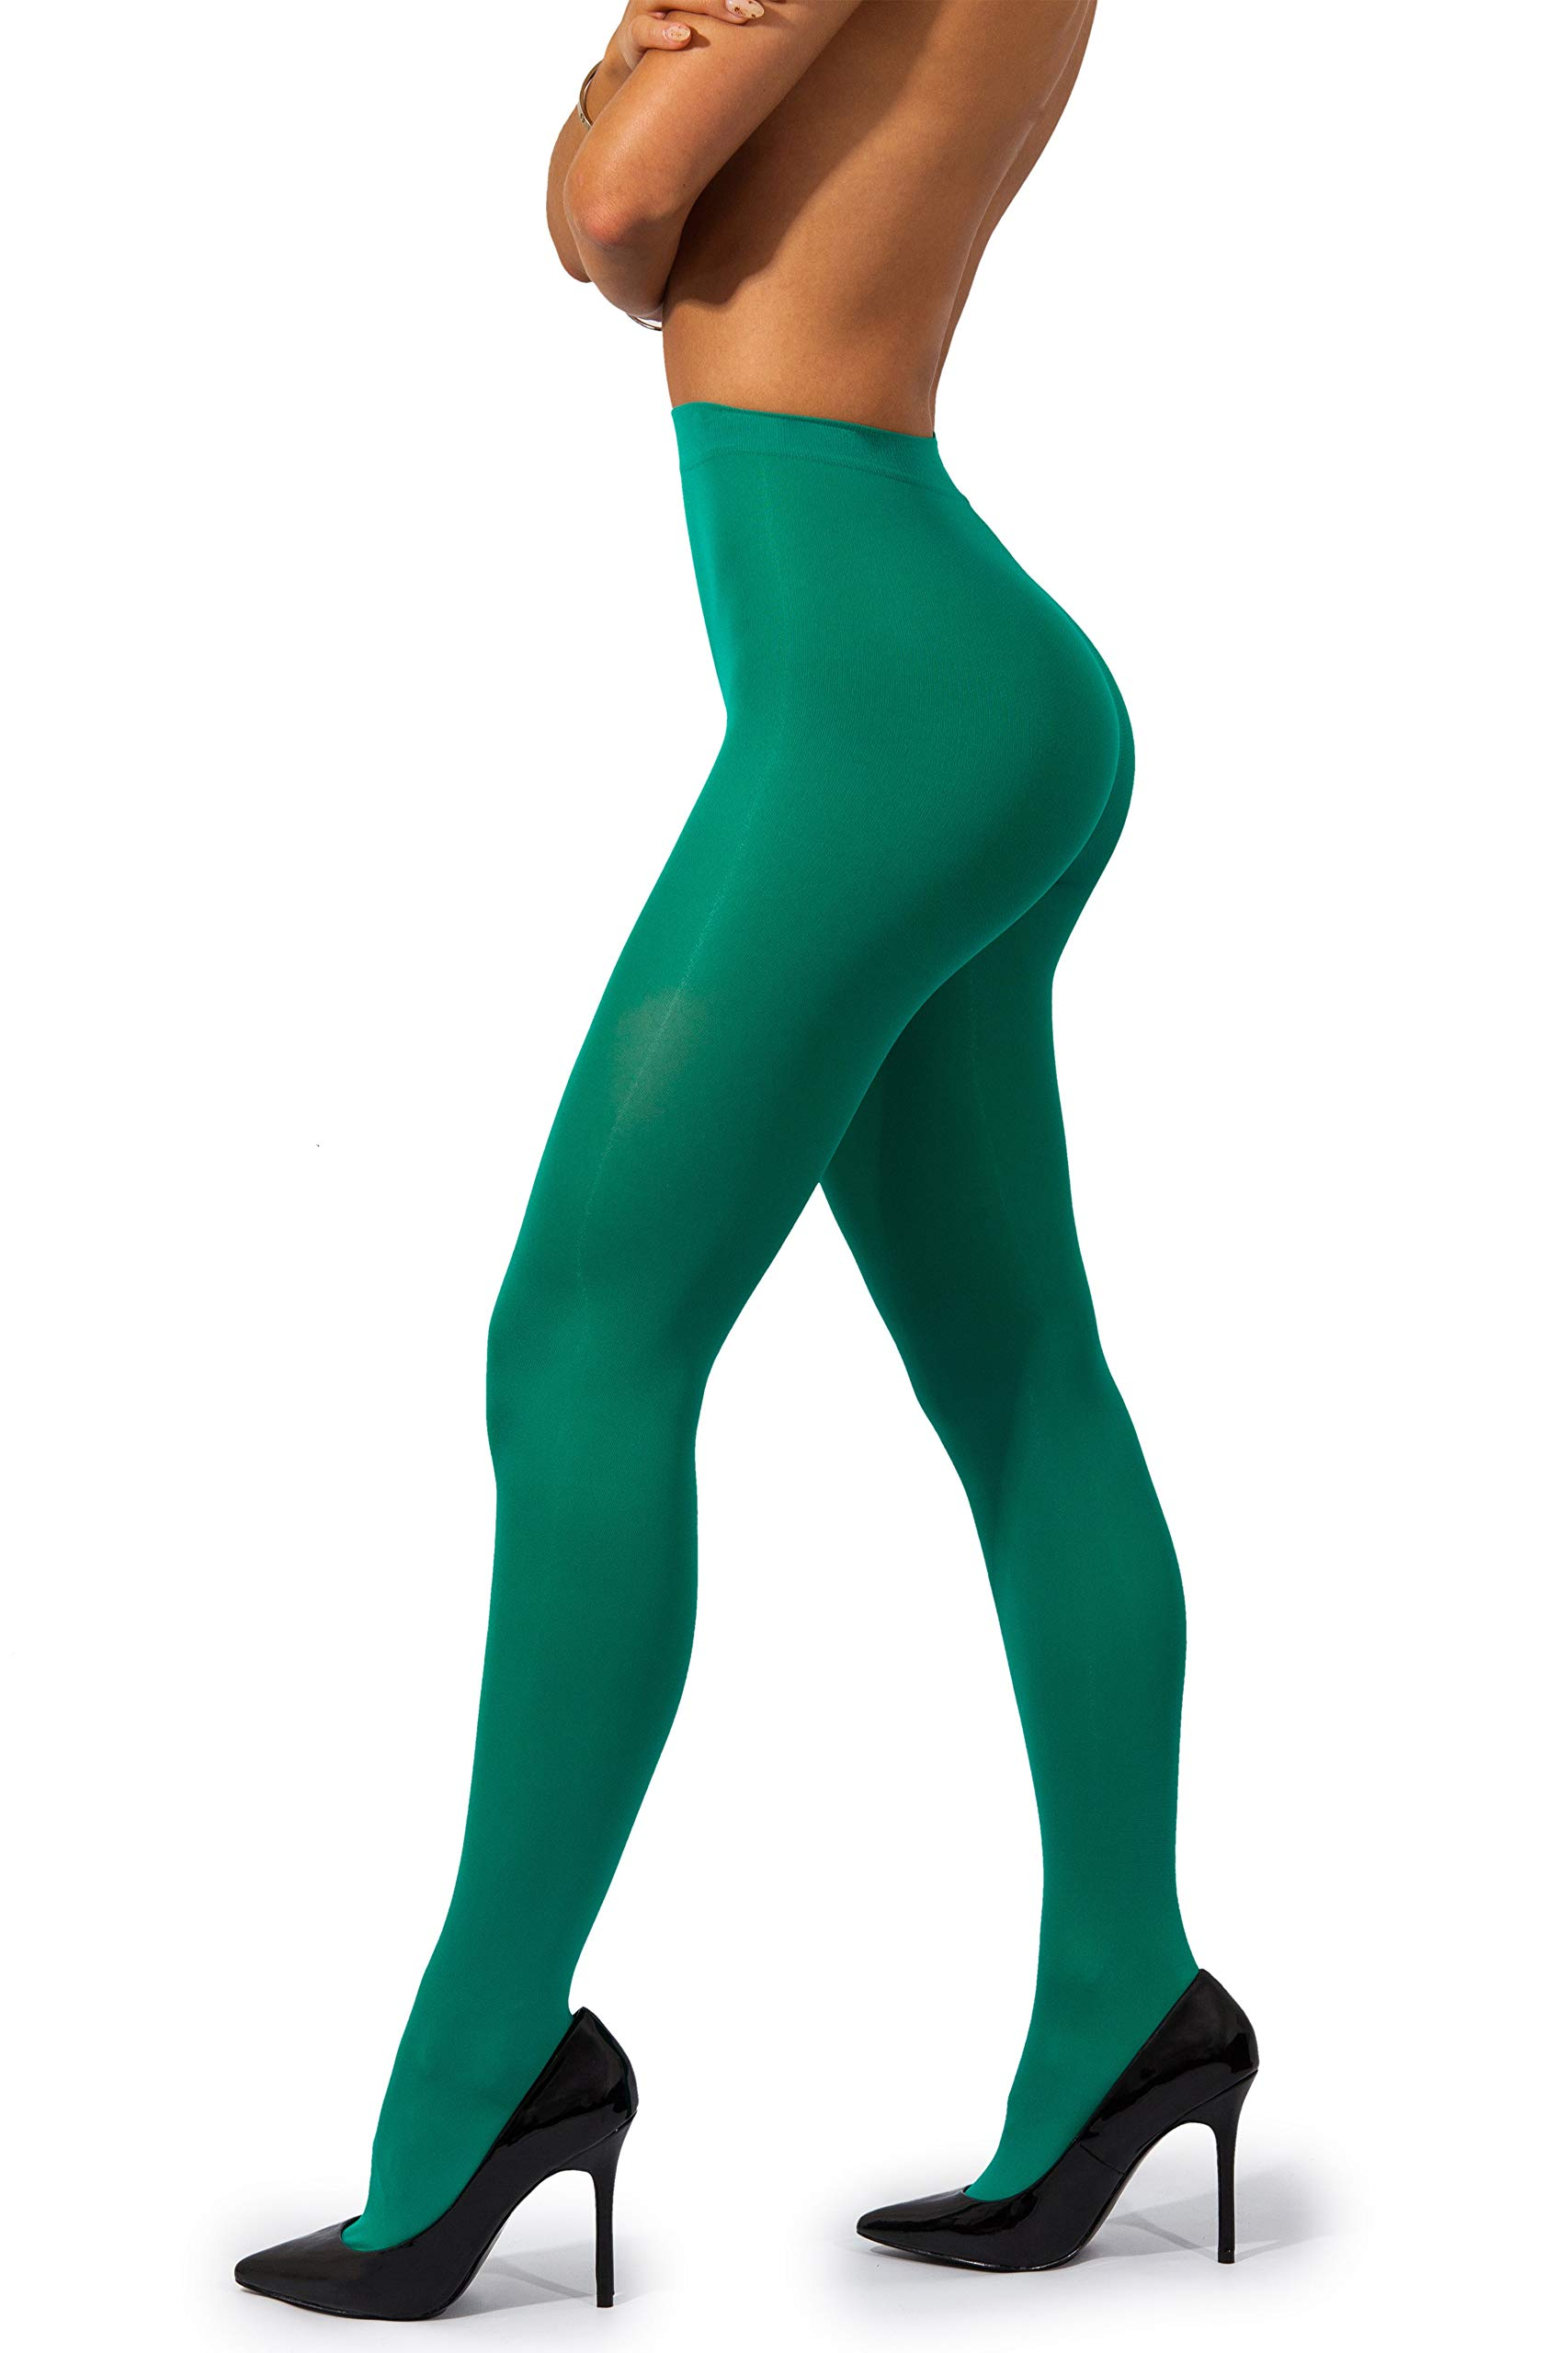 sofsy Opaque Microfibre Tights for Women - Invisibly Reinforced Opaque Brief Pantyhose 40Den [Made In Italy]